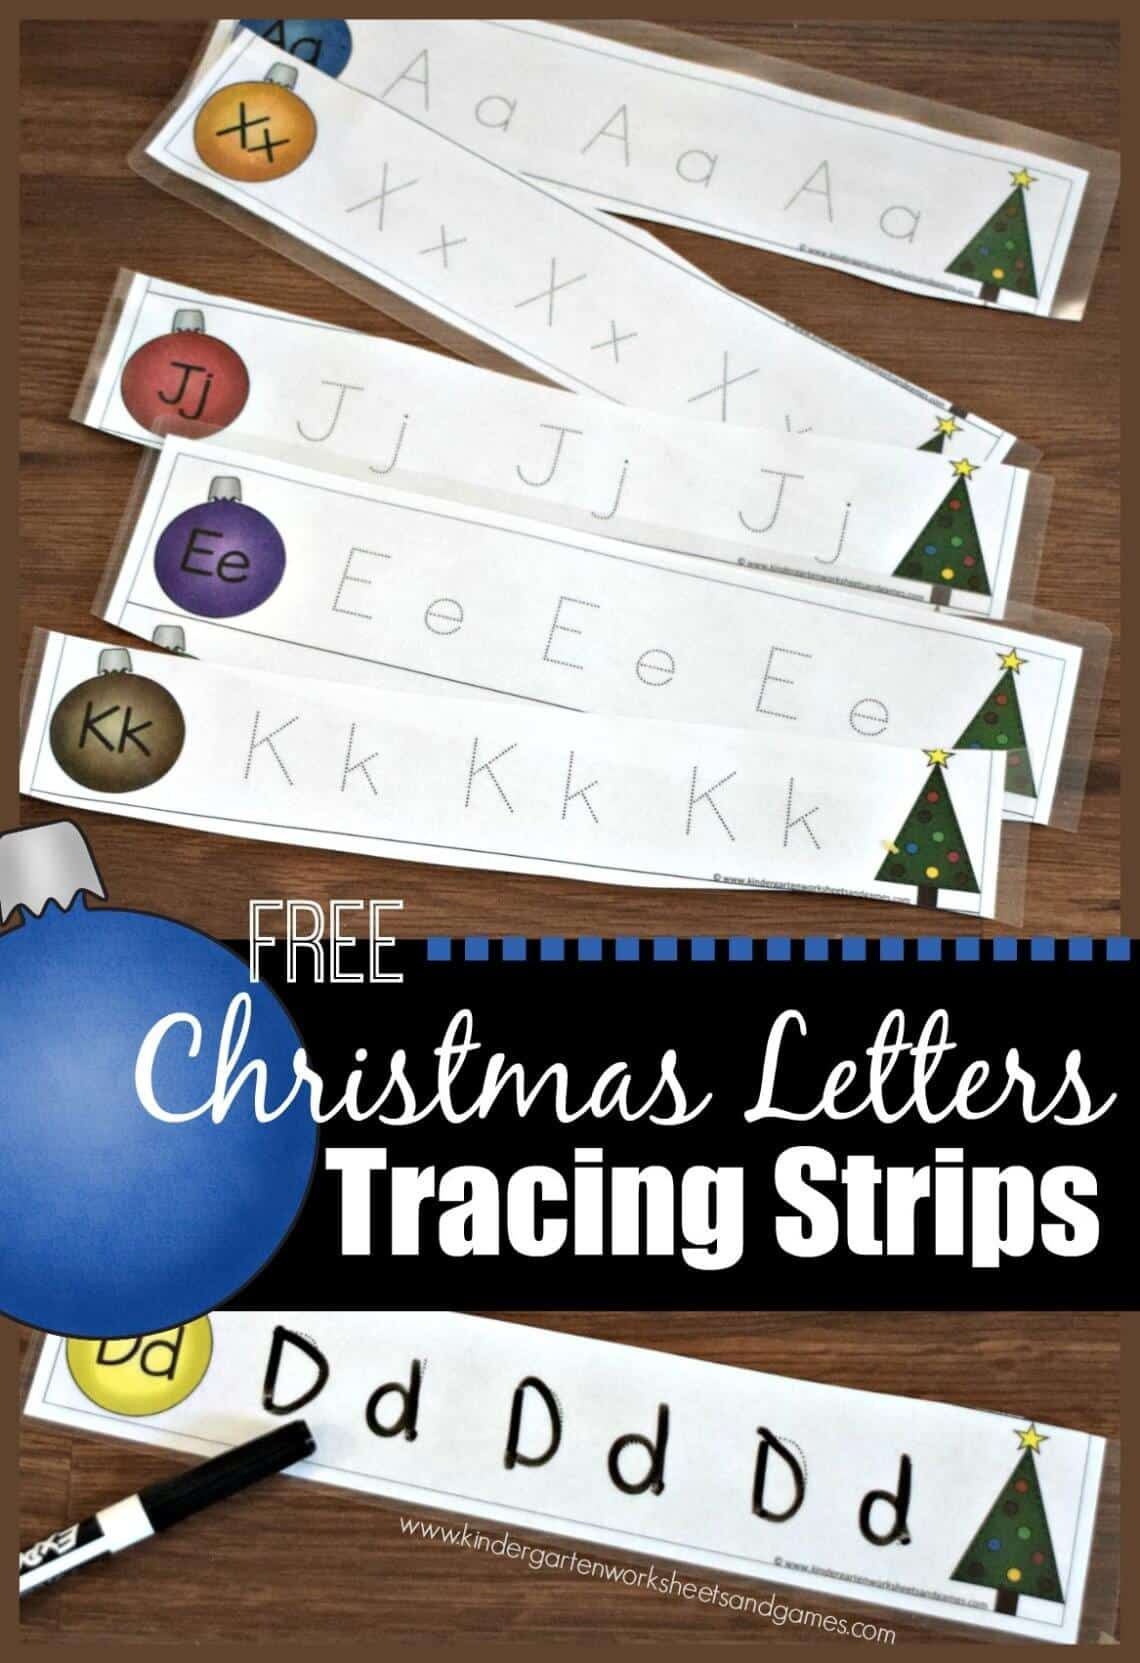 Christmas Letter Tracing Strips